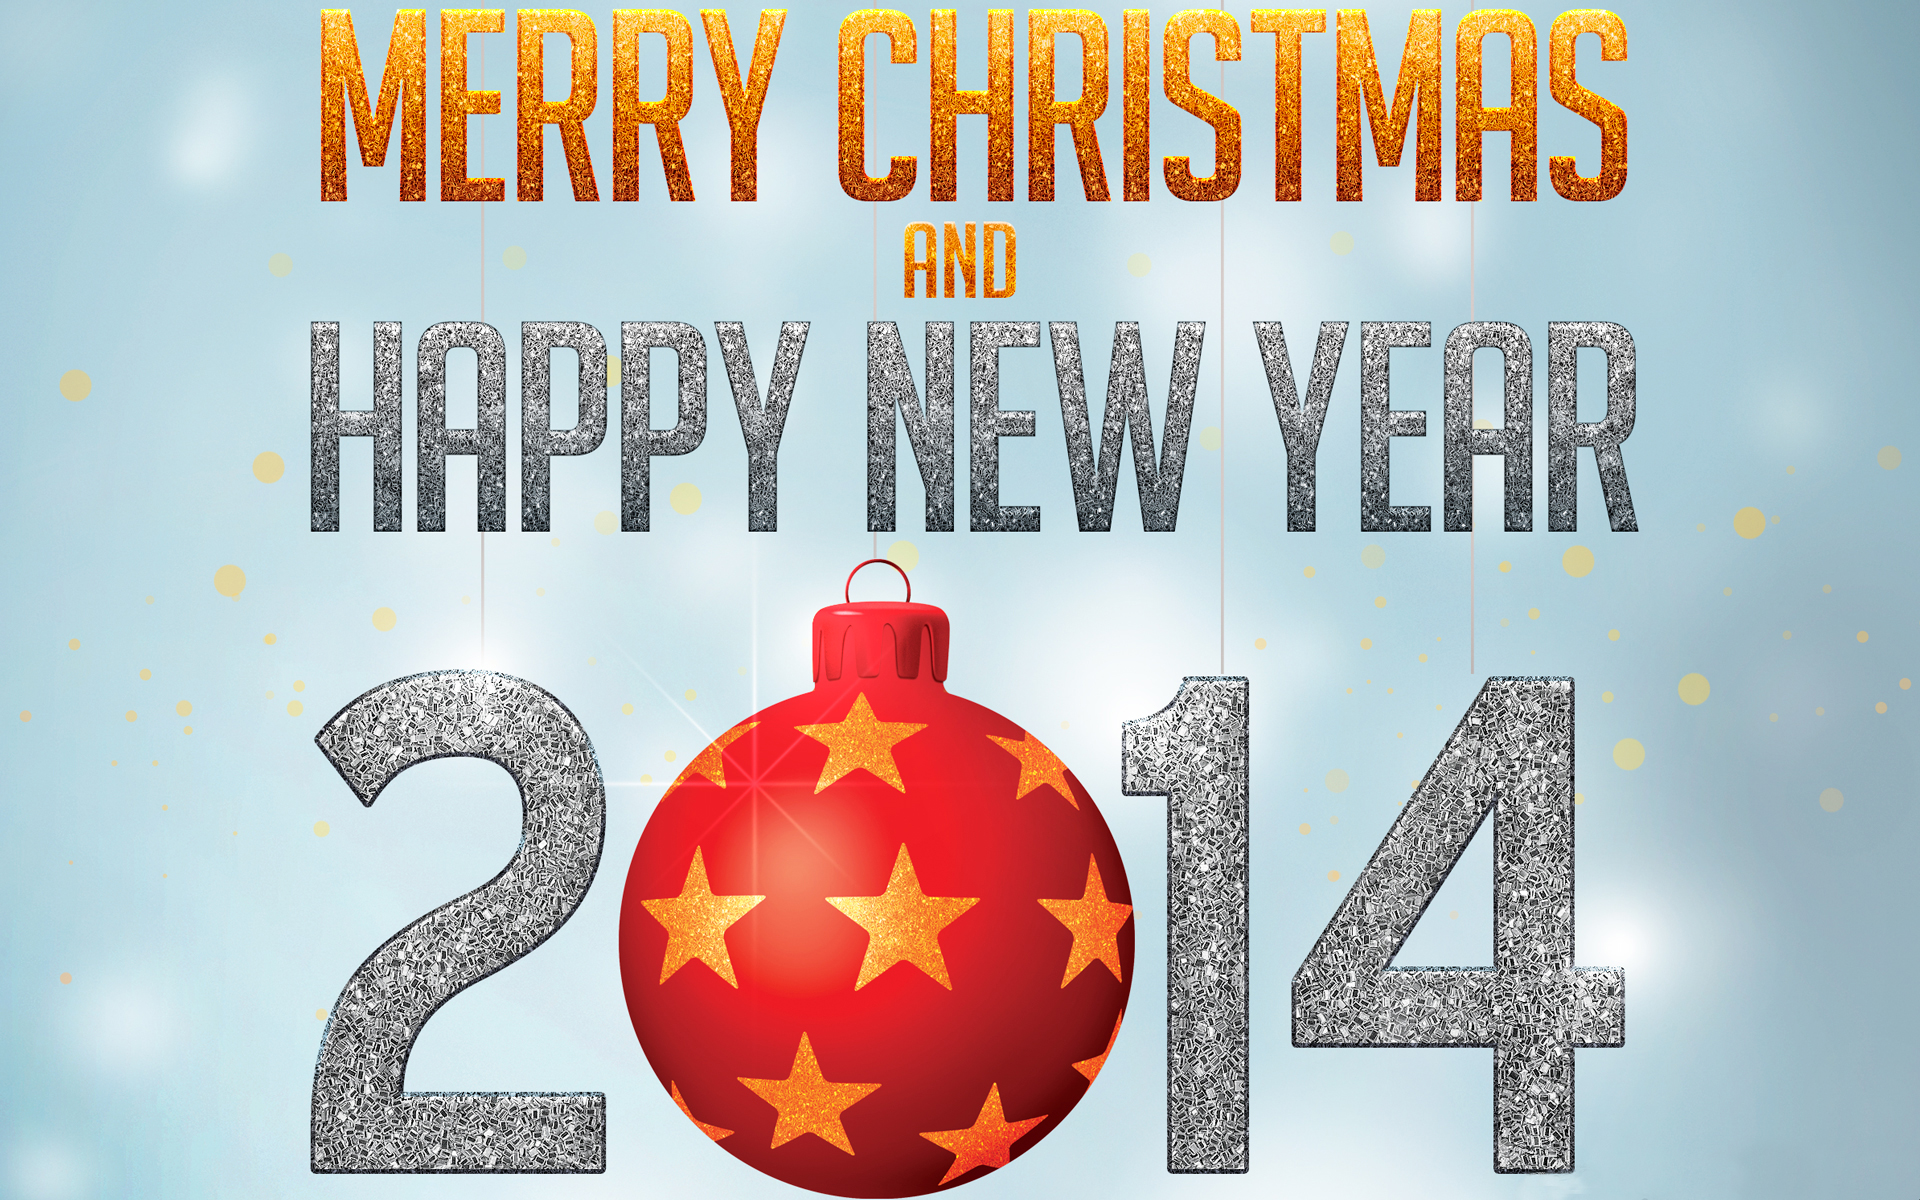 Merry Christmas Happy New Year 2014 Wallpaper 1920